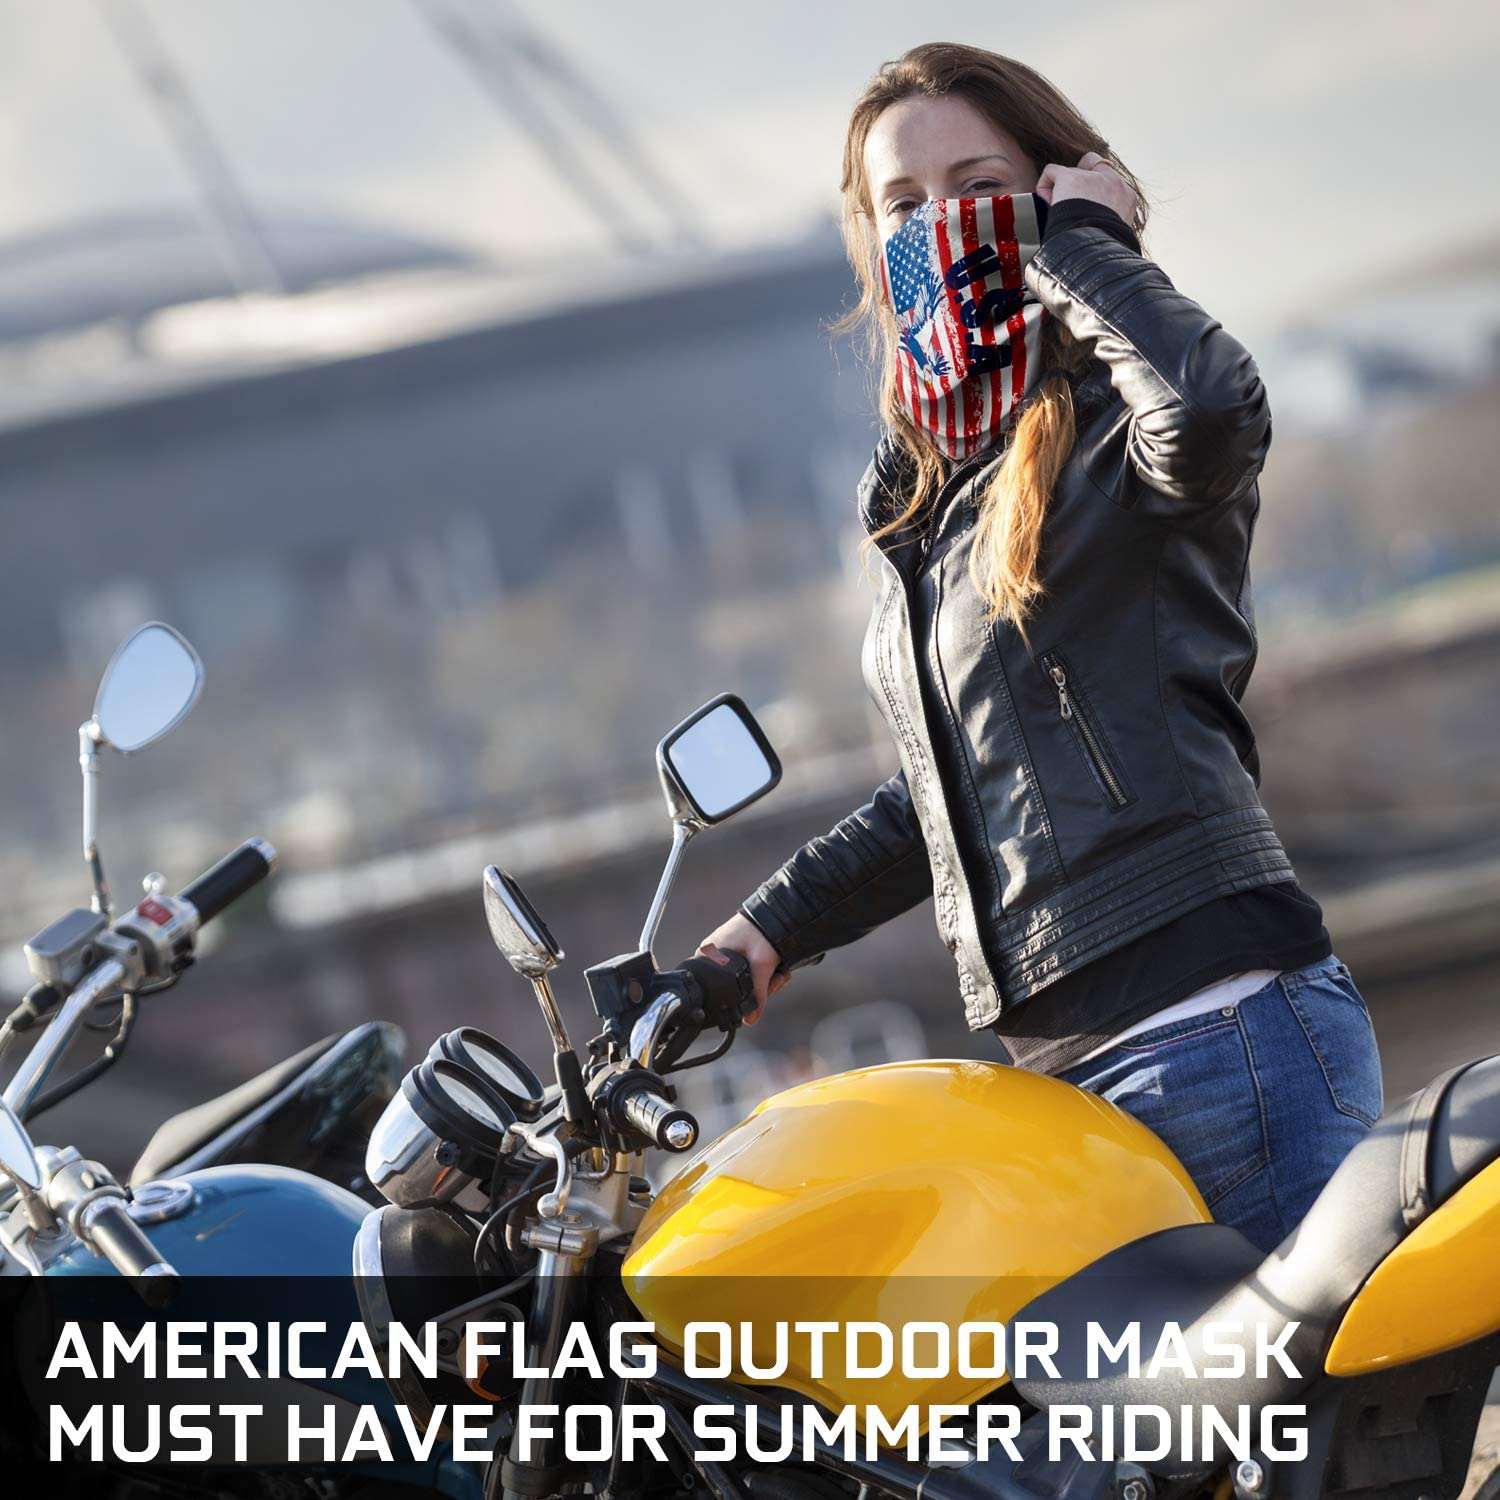 2 Pack American Flag Motorcycle Mask Outdoor Neck Scarf Headwear for ATV Riding Motorcycling Skiing